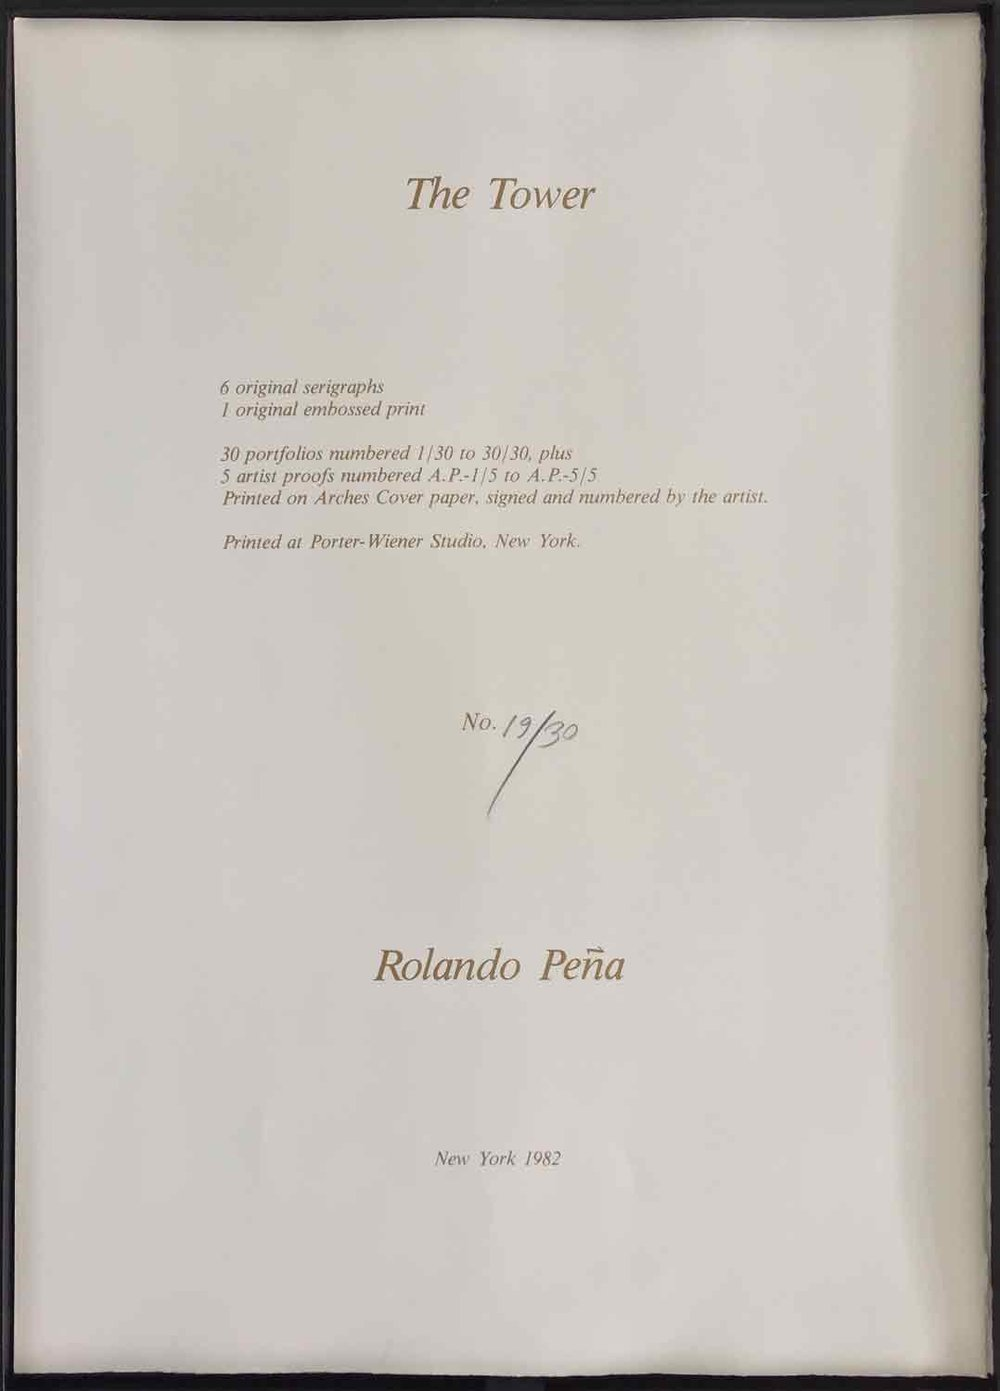 Rolando-Peña_01_Solo_The-Tower_Photo-Silkscreens_Specs_1982.jpg